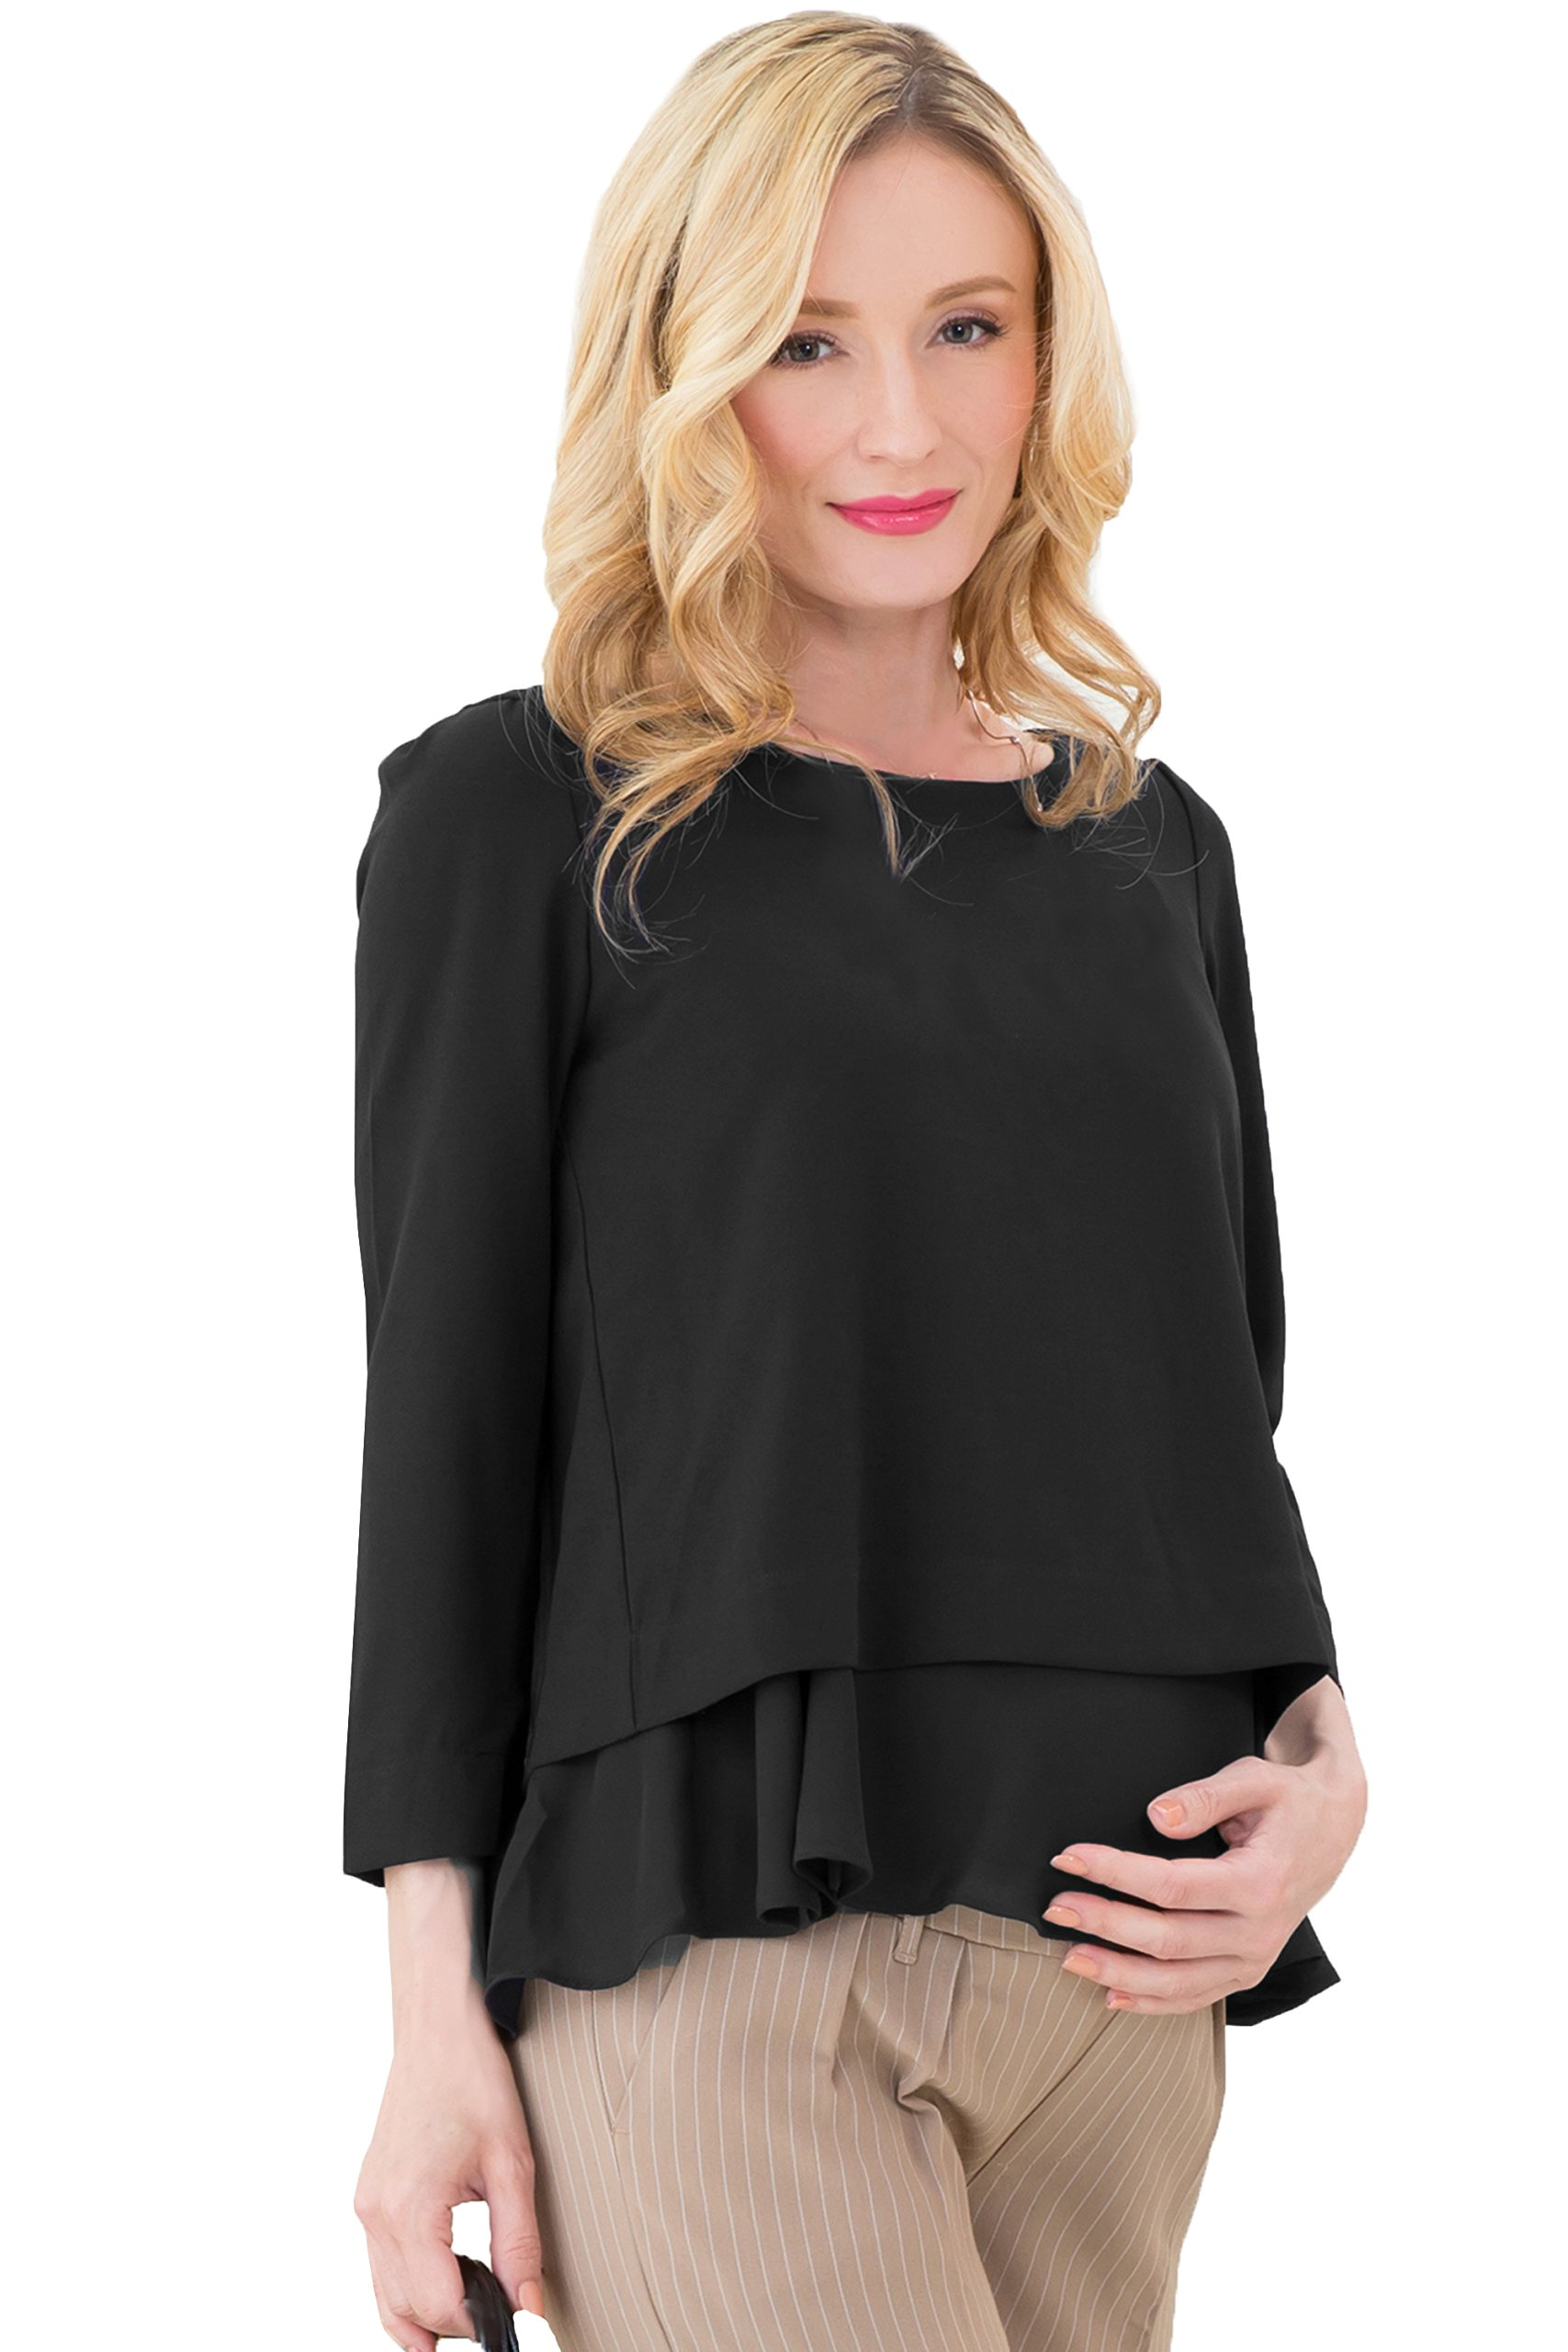 Sweet Mommy Maternity and Nursing Layered Georgette Top Blouse with Chiffon Hem Black M